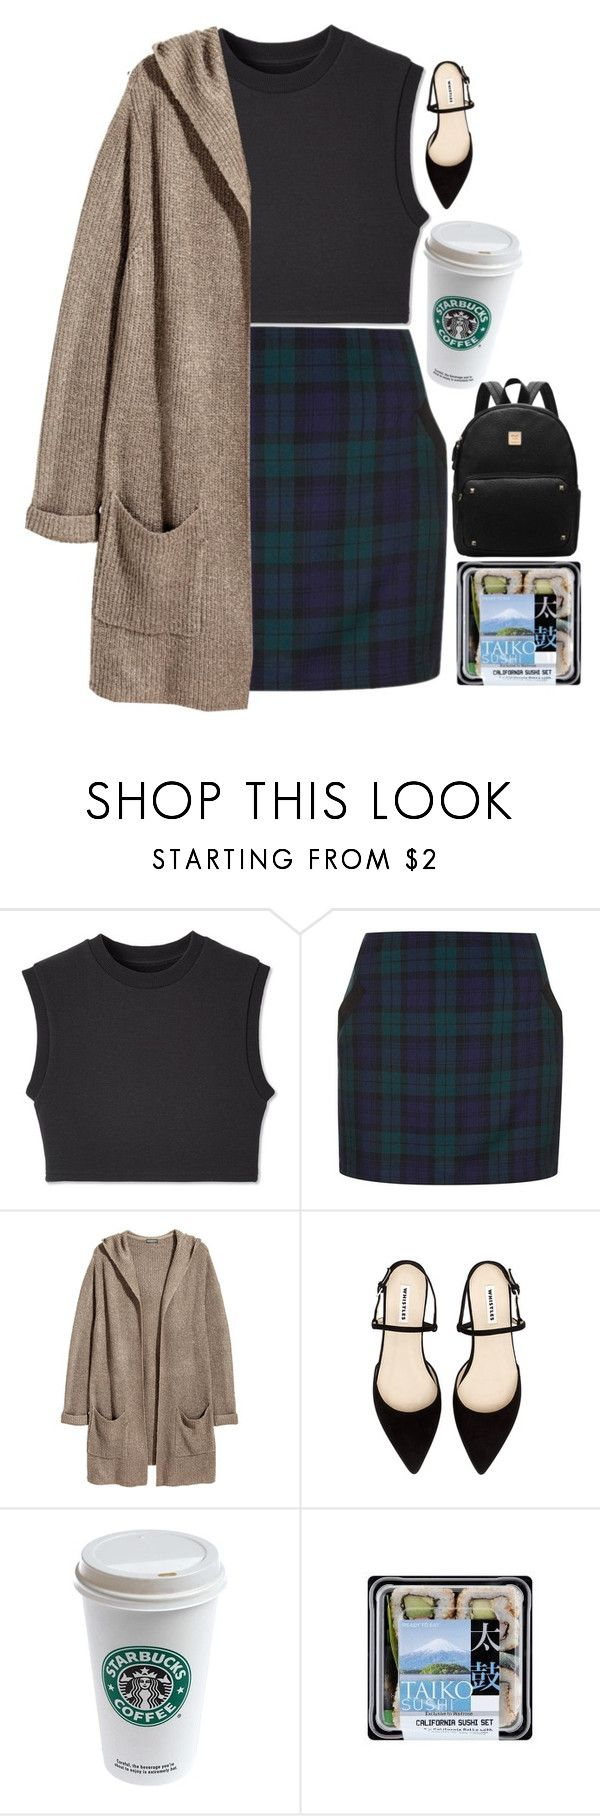 """""""Untitled #5"""" by skyewalker16 ❤ liked on Polyvore featuring Topshop and H&M"""